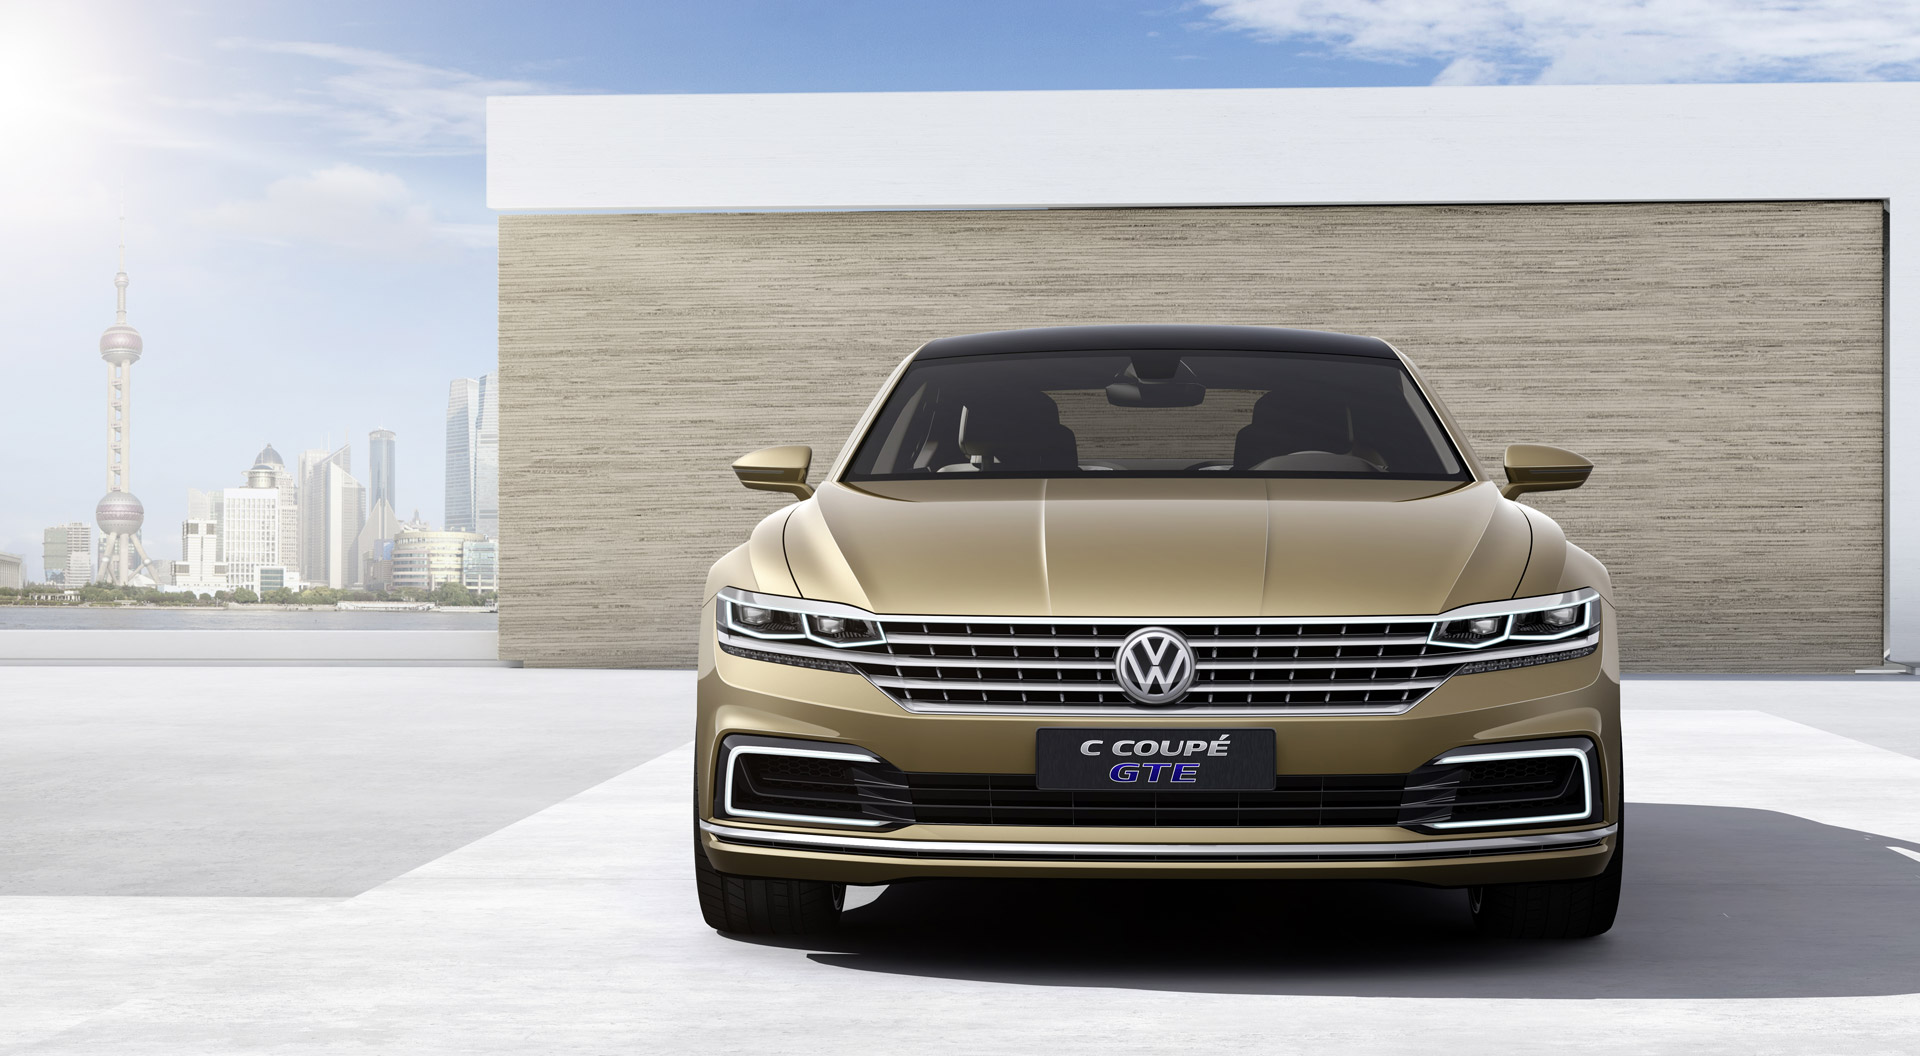 Italian Design Vw Next Gen Volkswagen Phaetons Design Previewed By C Coupe